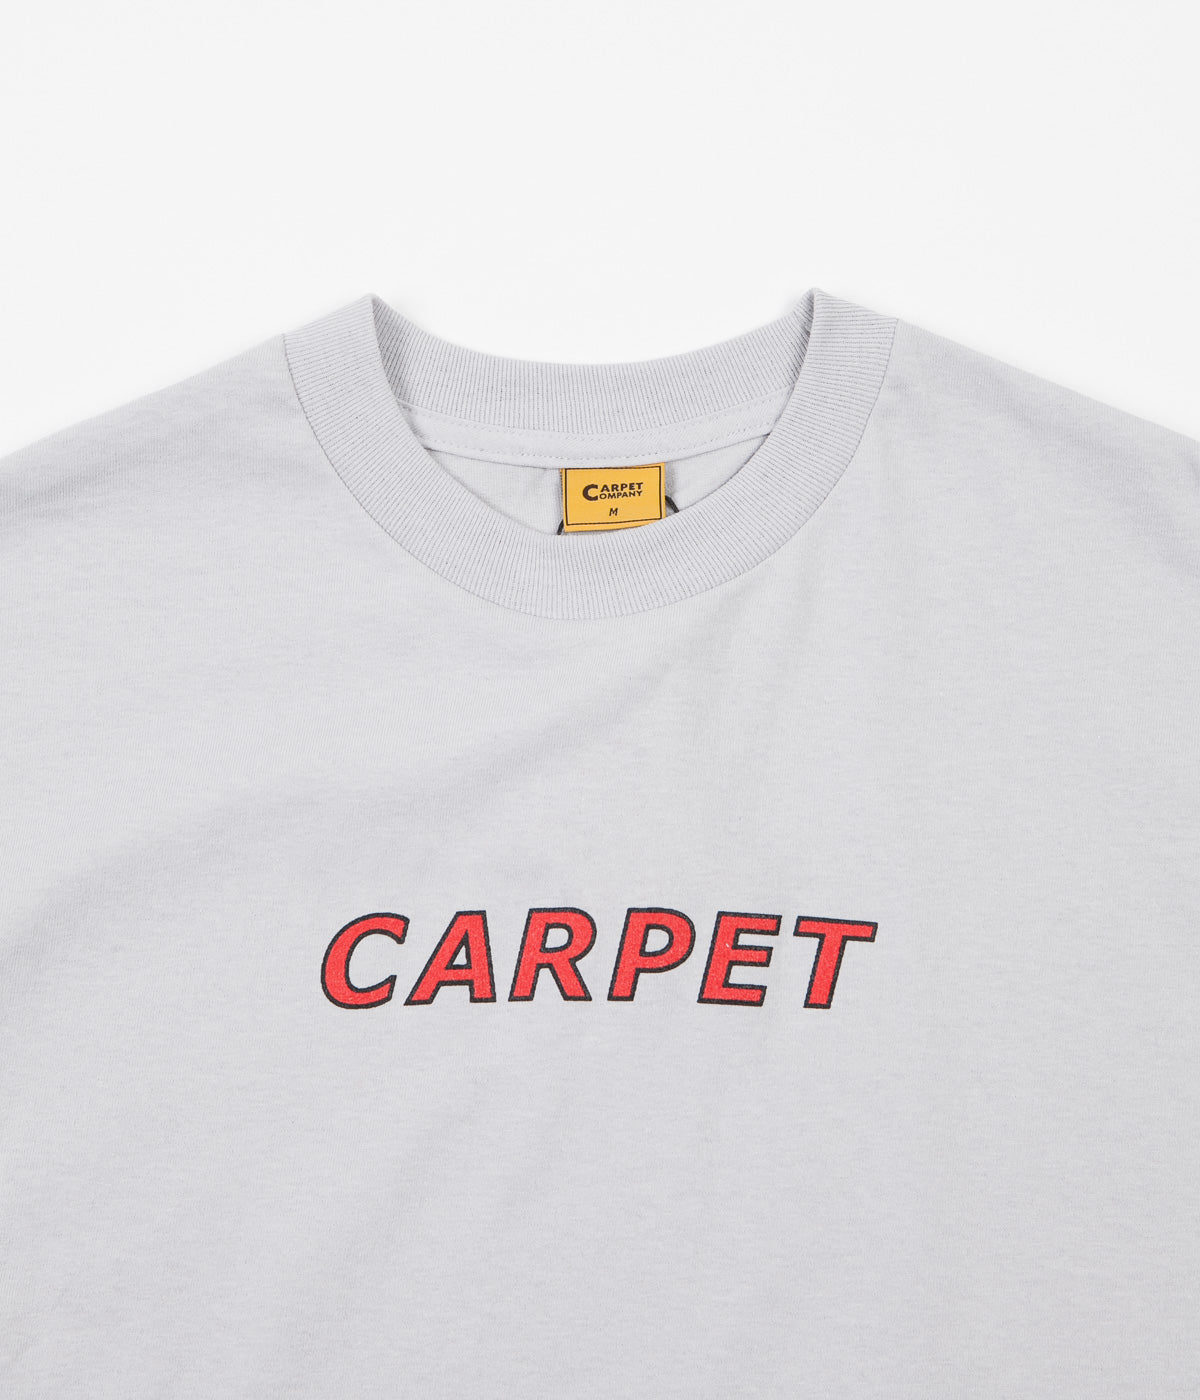 Carpet Co. Change Your Mind T-Shirt - Silver